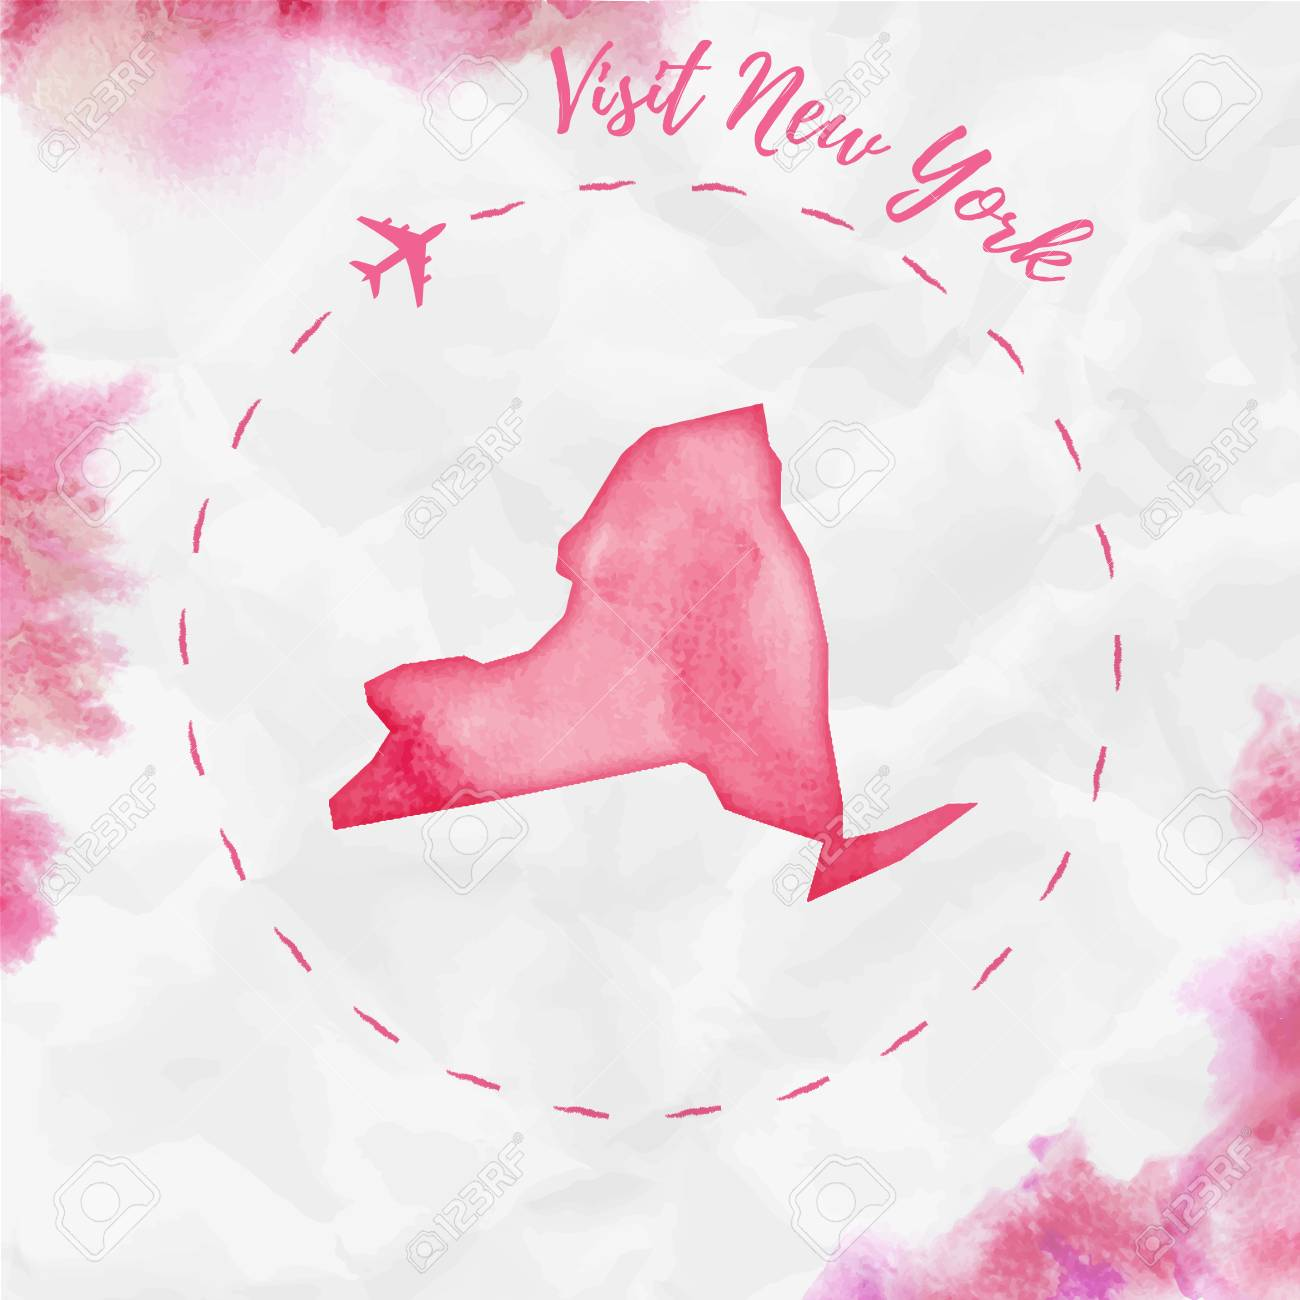 Map Of New York Poster.New York Watercolor Us State Map In Red Colors Visit New York